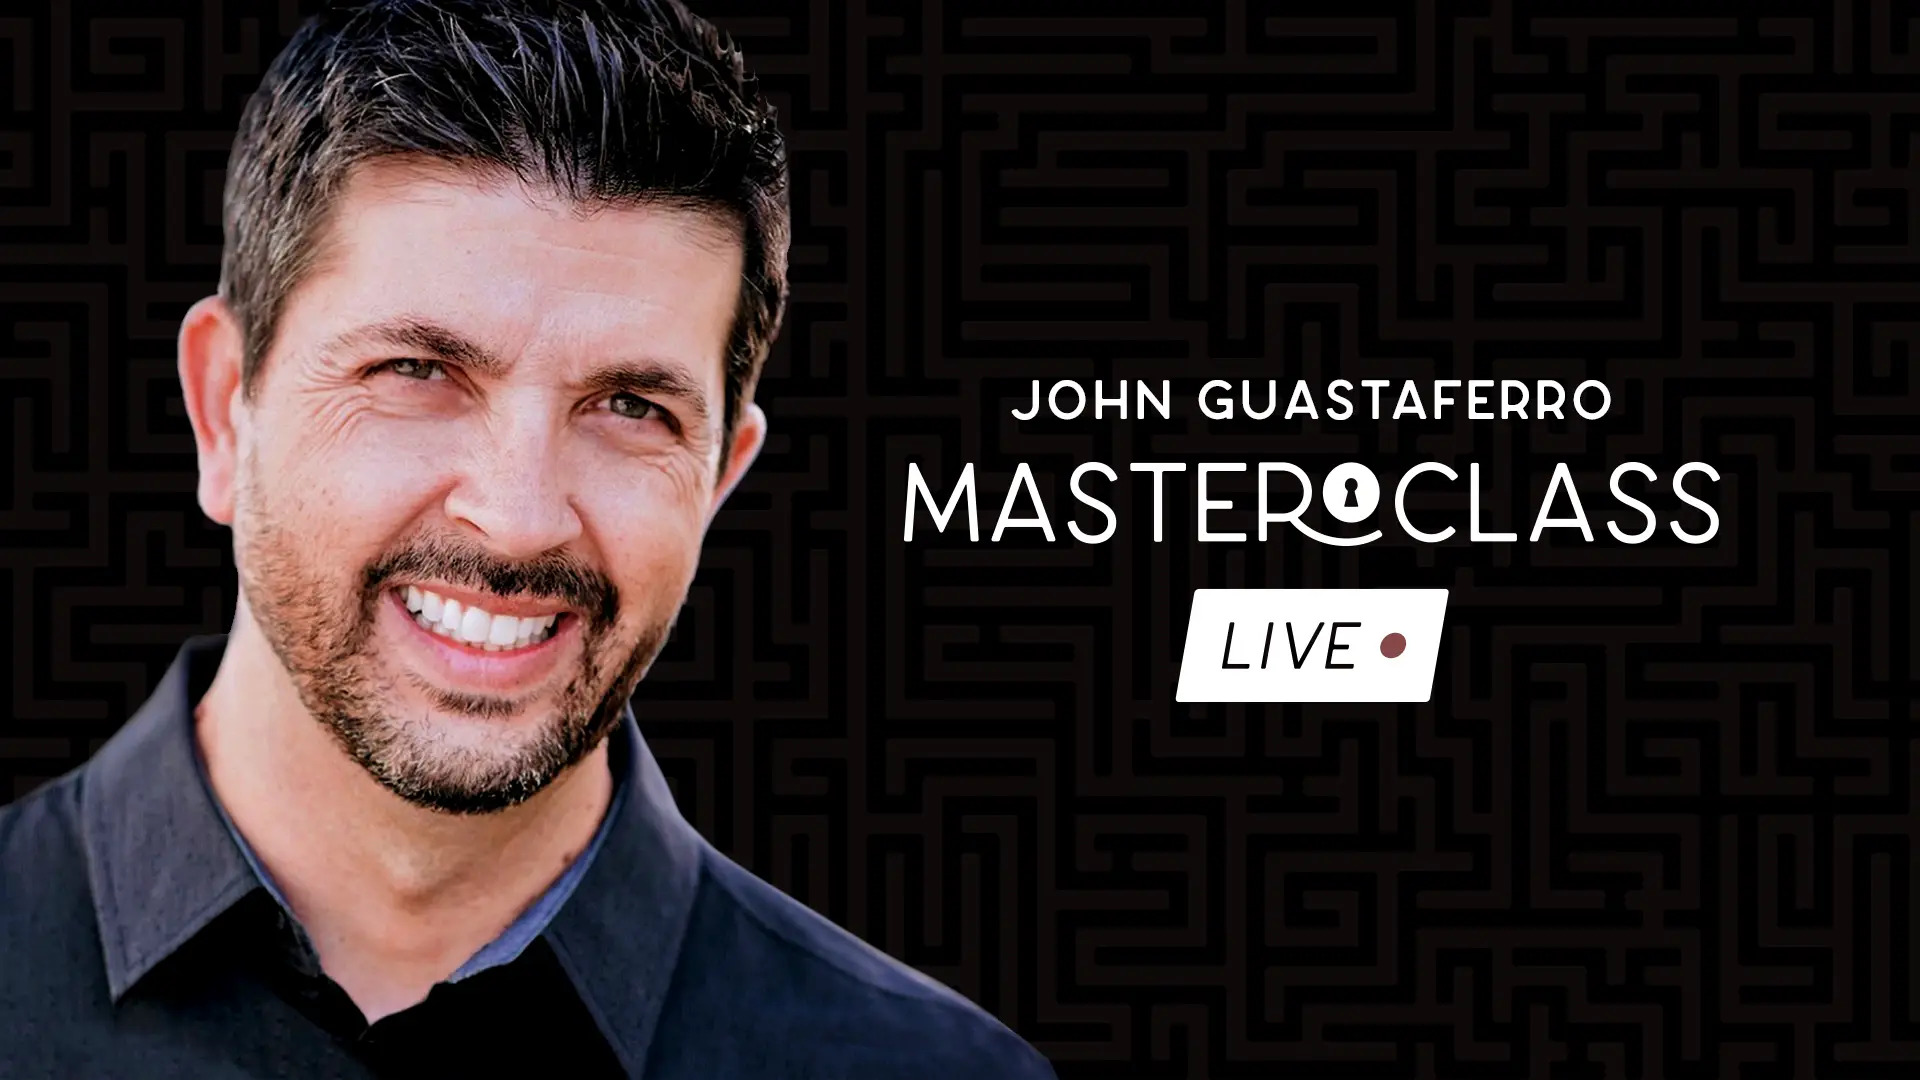 Masterclass Live Lecture by John Guastaferro (3 Weeks + Zoom Live) (MP4 Videos Download)